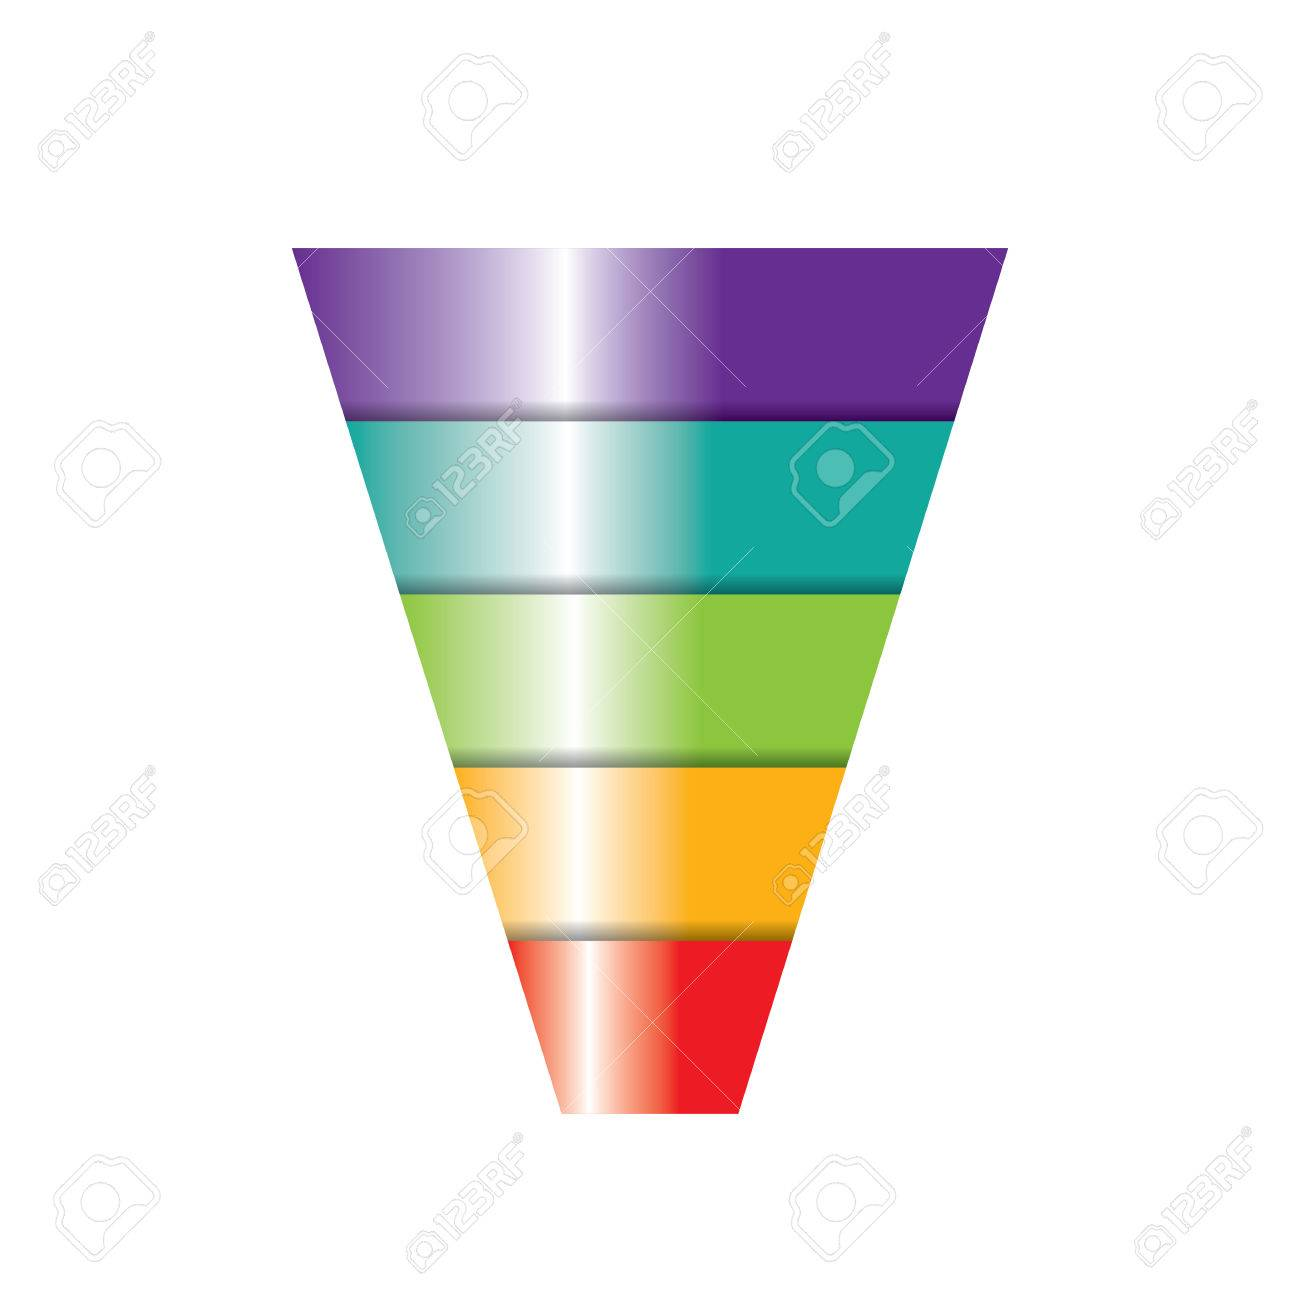 sales funnel templates for powerpoint hayman reese brake, Modern powerpoint